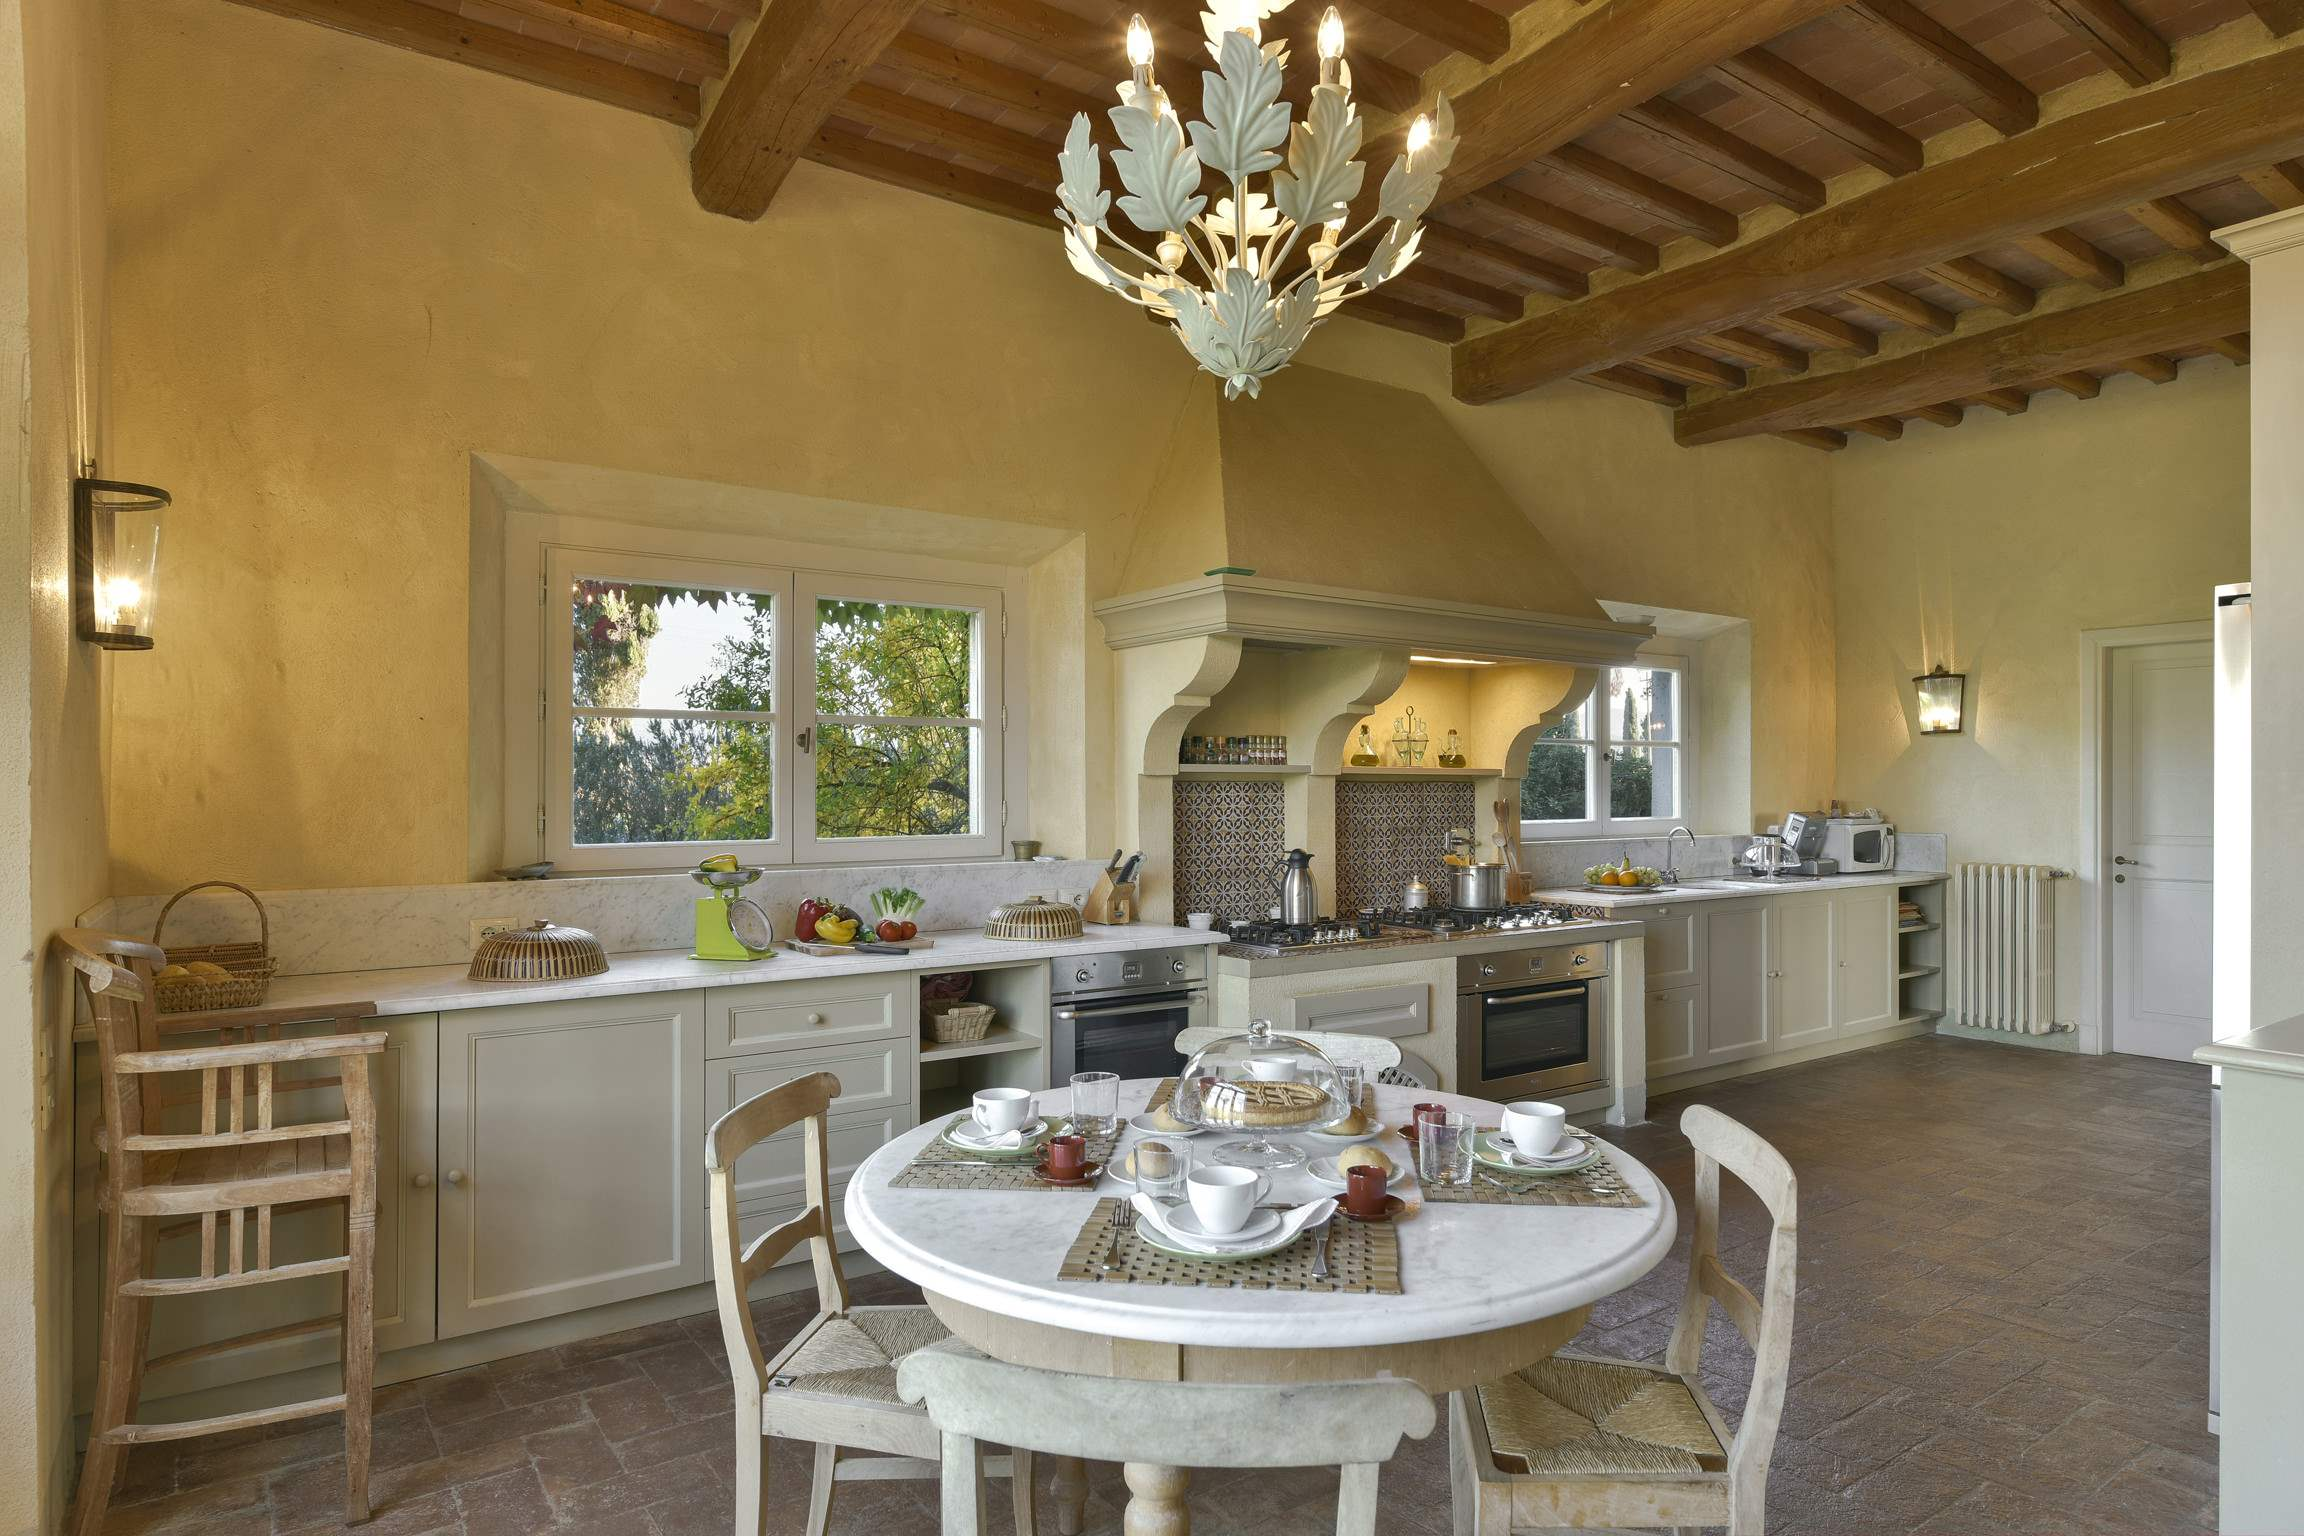 Villa Maremma 1, 7 bedroom villa in South Tuscany - Maremma, Tuscany Photo #10